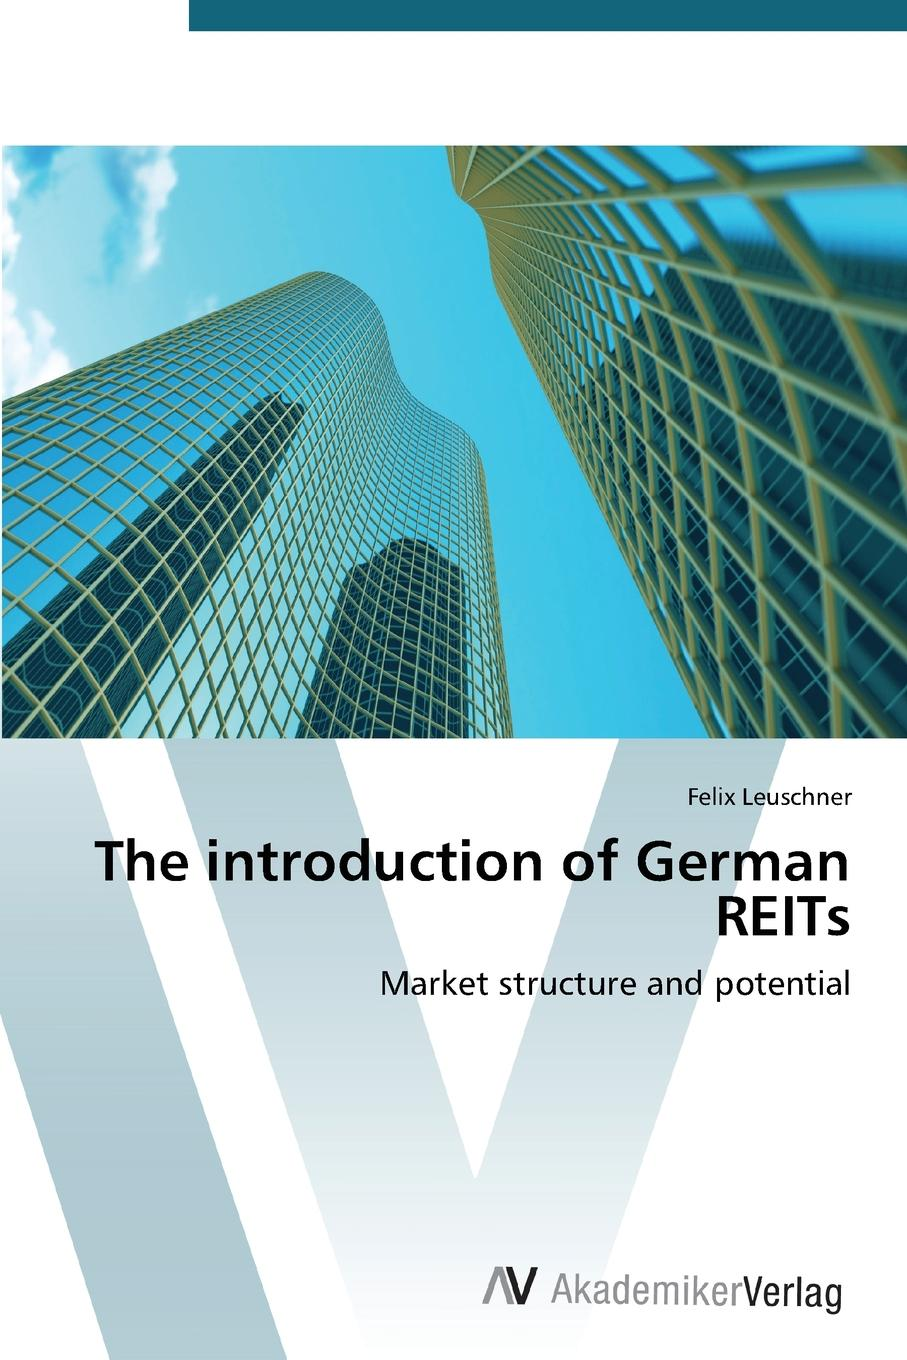 Leuschner Felix The Introduction of German Reits peter beck canadian income funds your complete guide to income trusts royalty trusts and real estate investment trusts